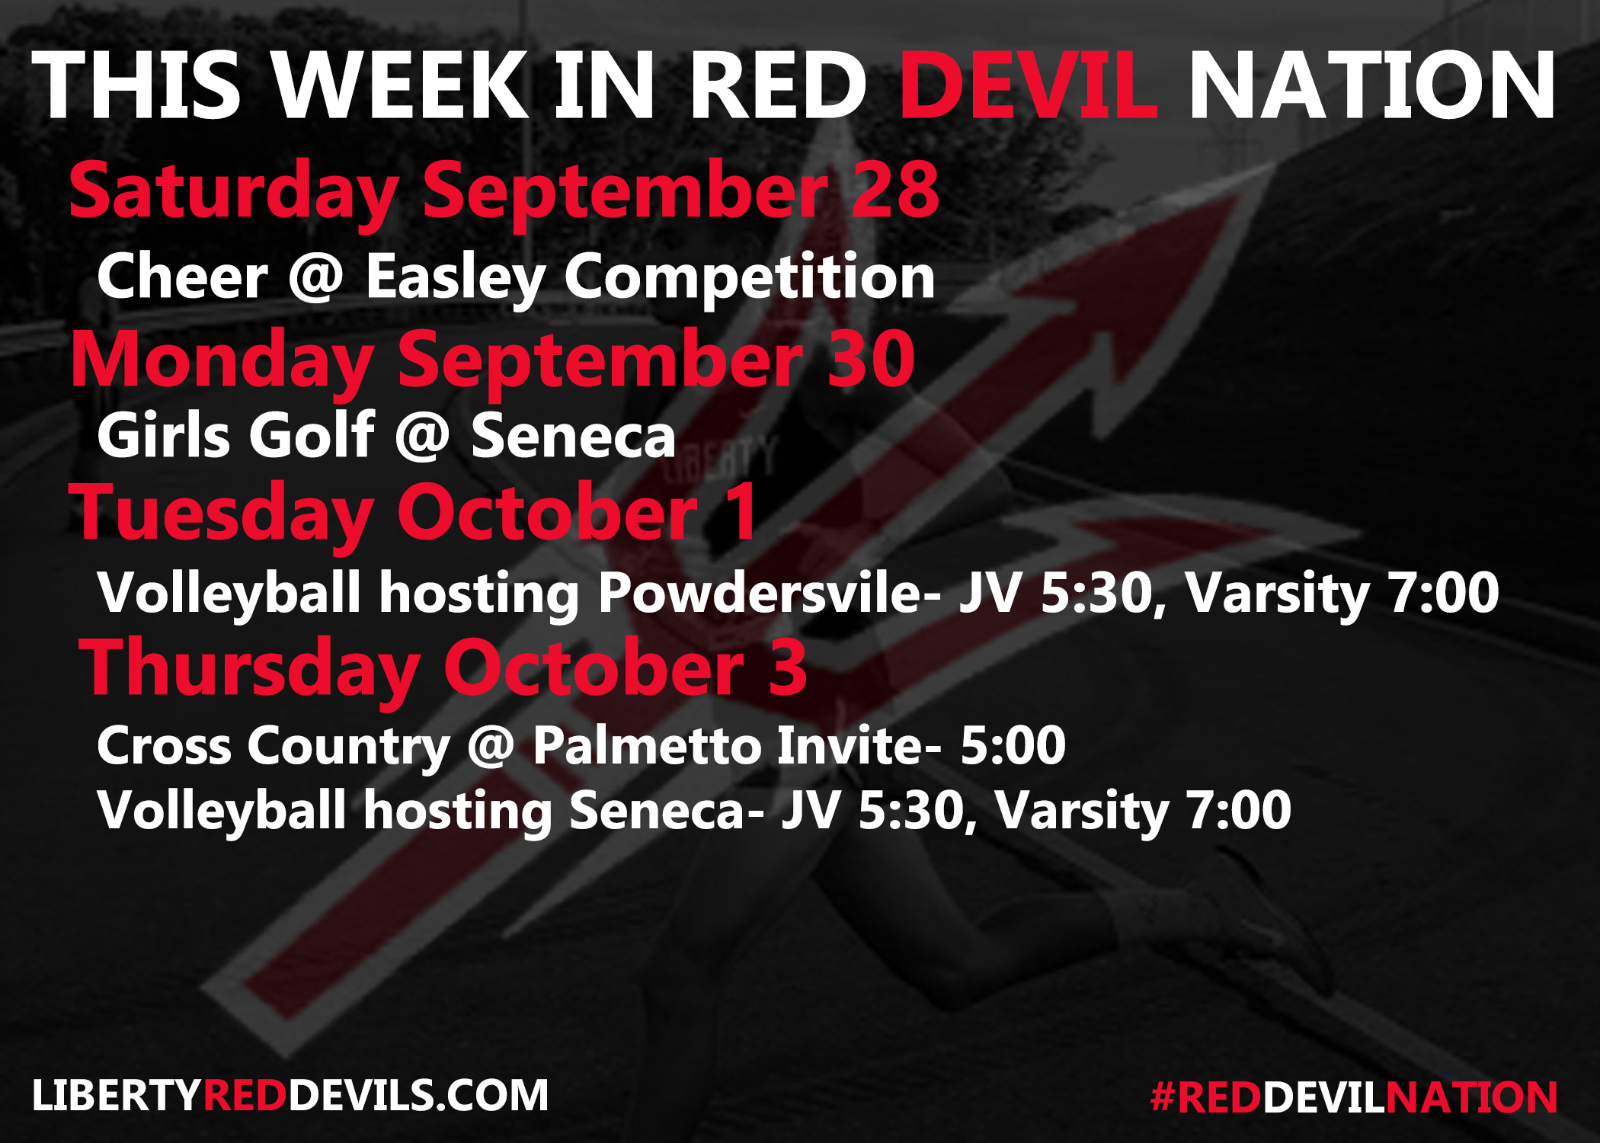 This Week in #reddevilnation 9/27-10/3